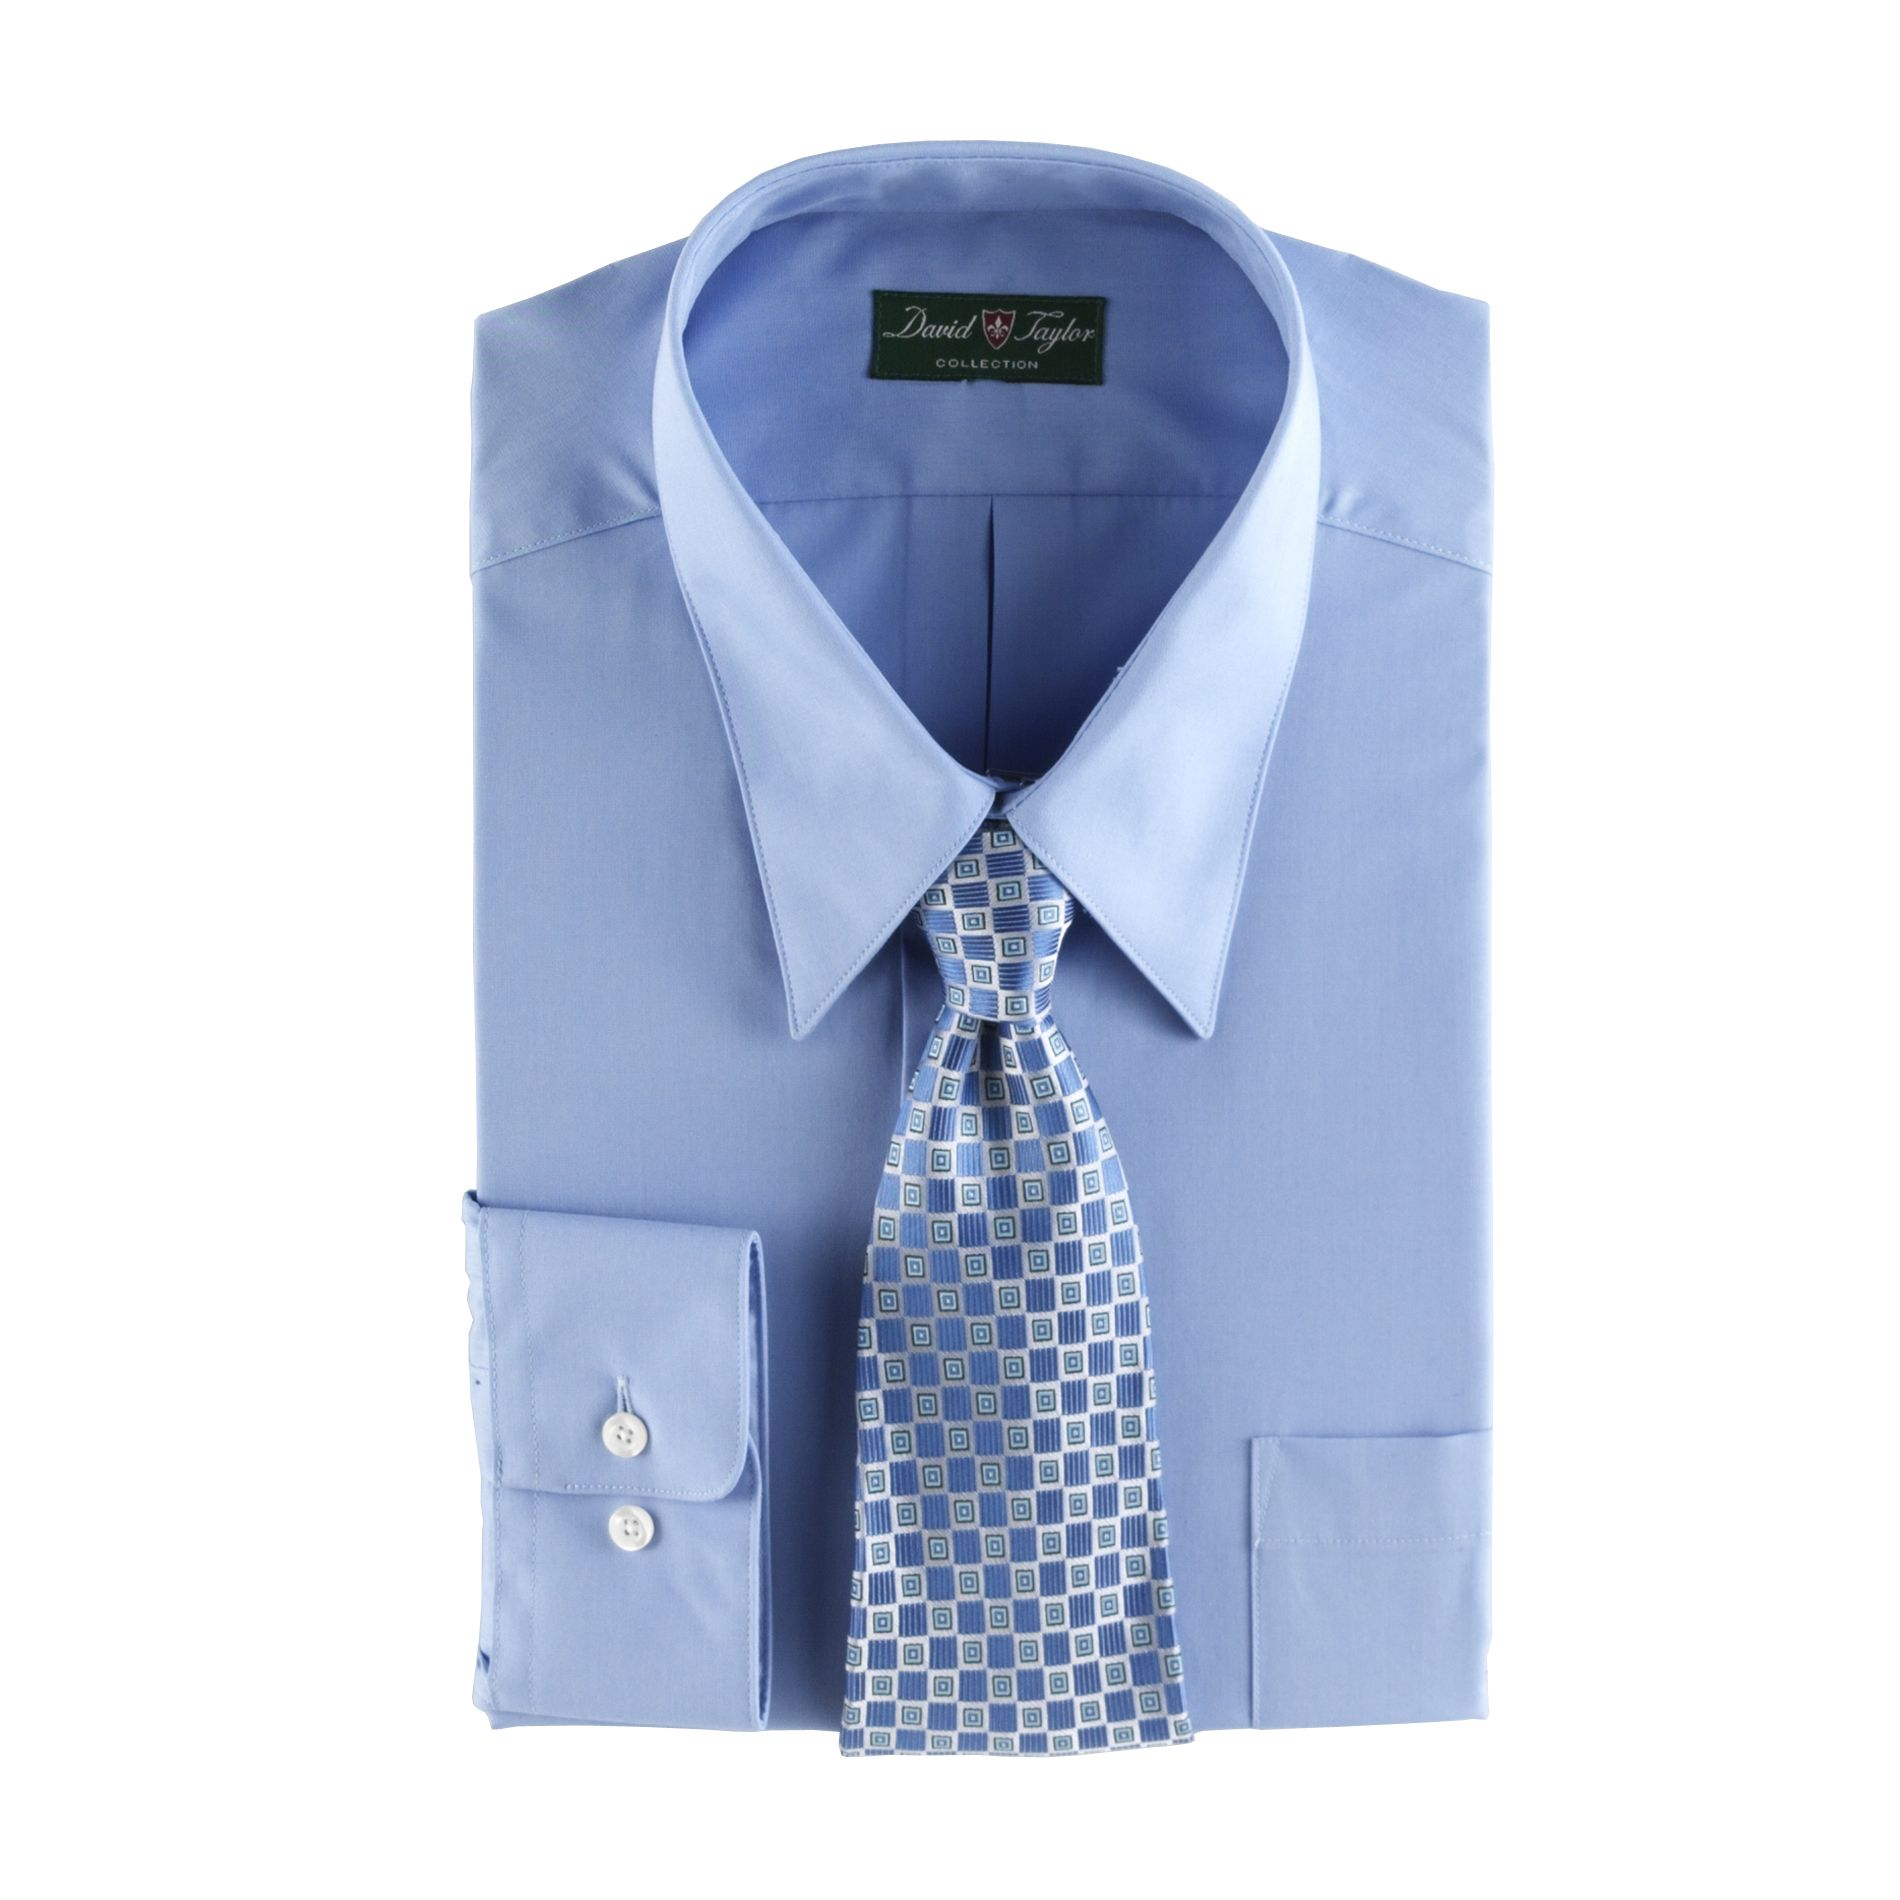 Men's Dress Shirt & Tie Set